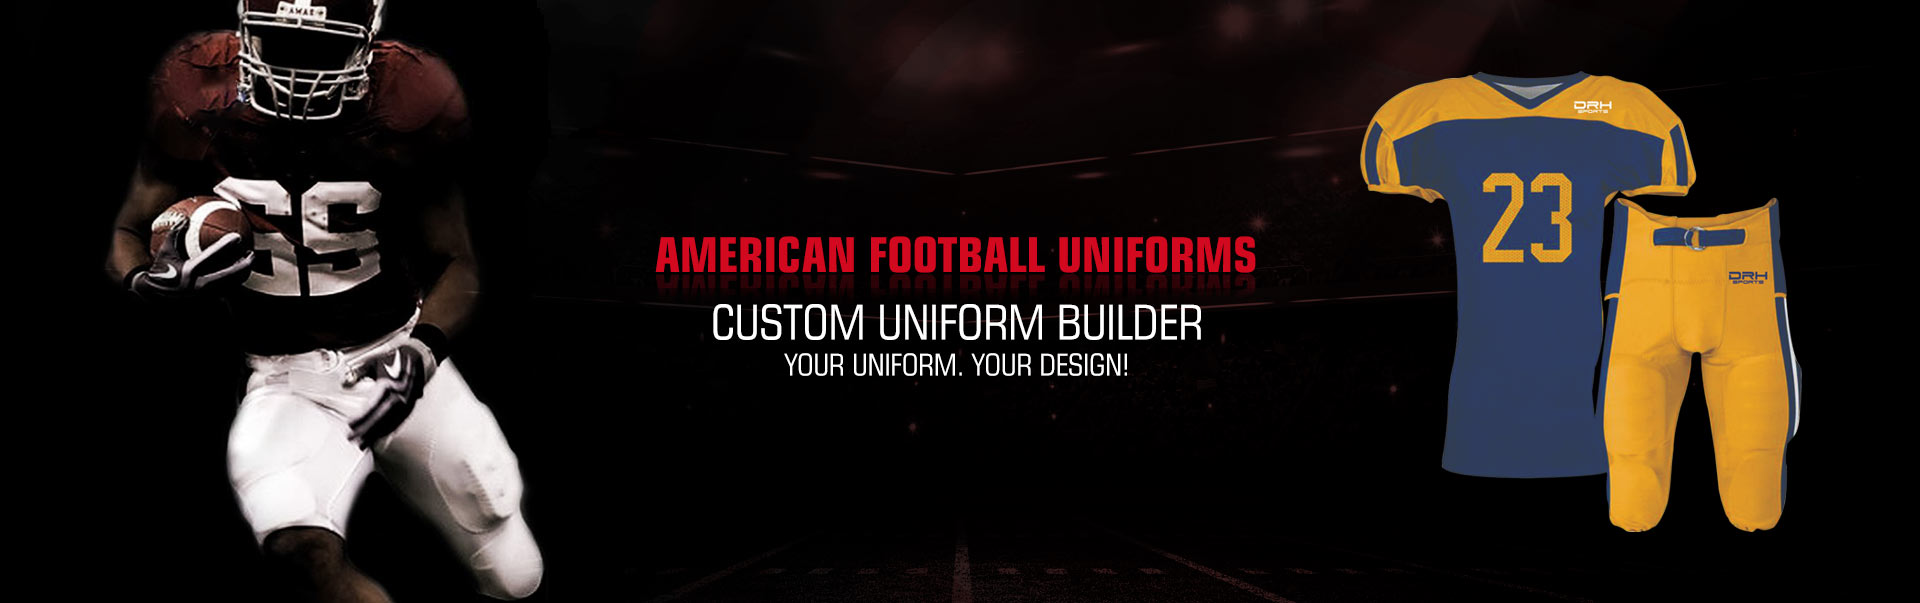 American Football Uniform Wholesaler, Suppliers in Ely